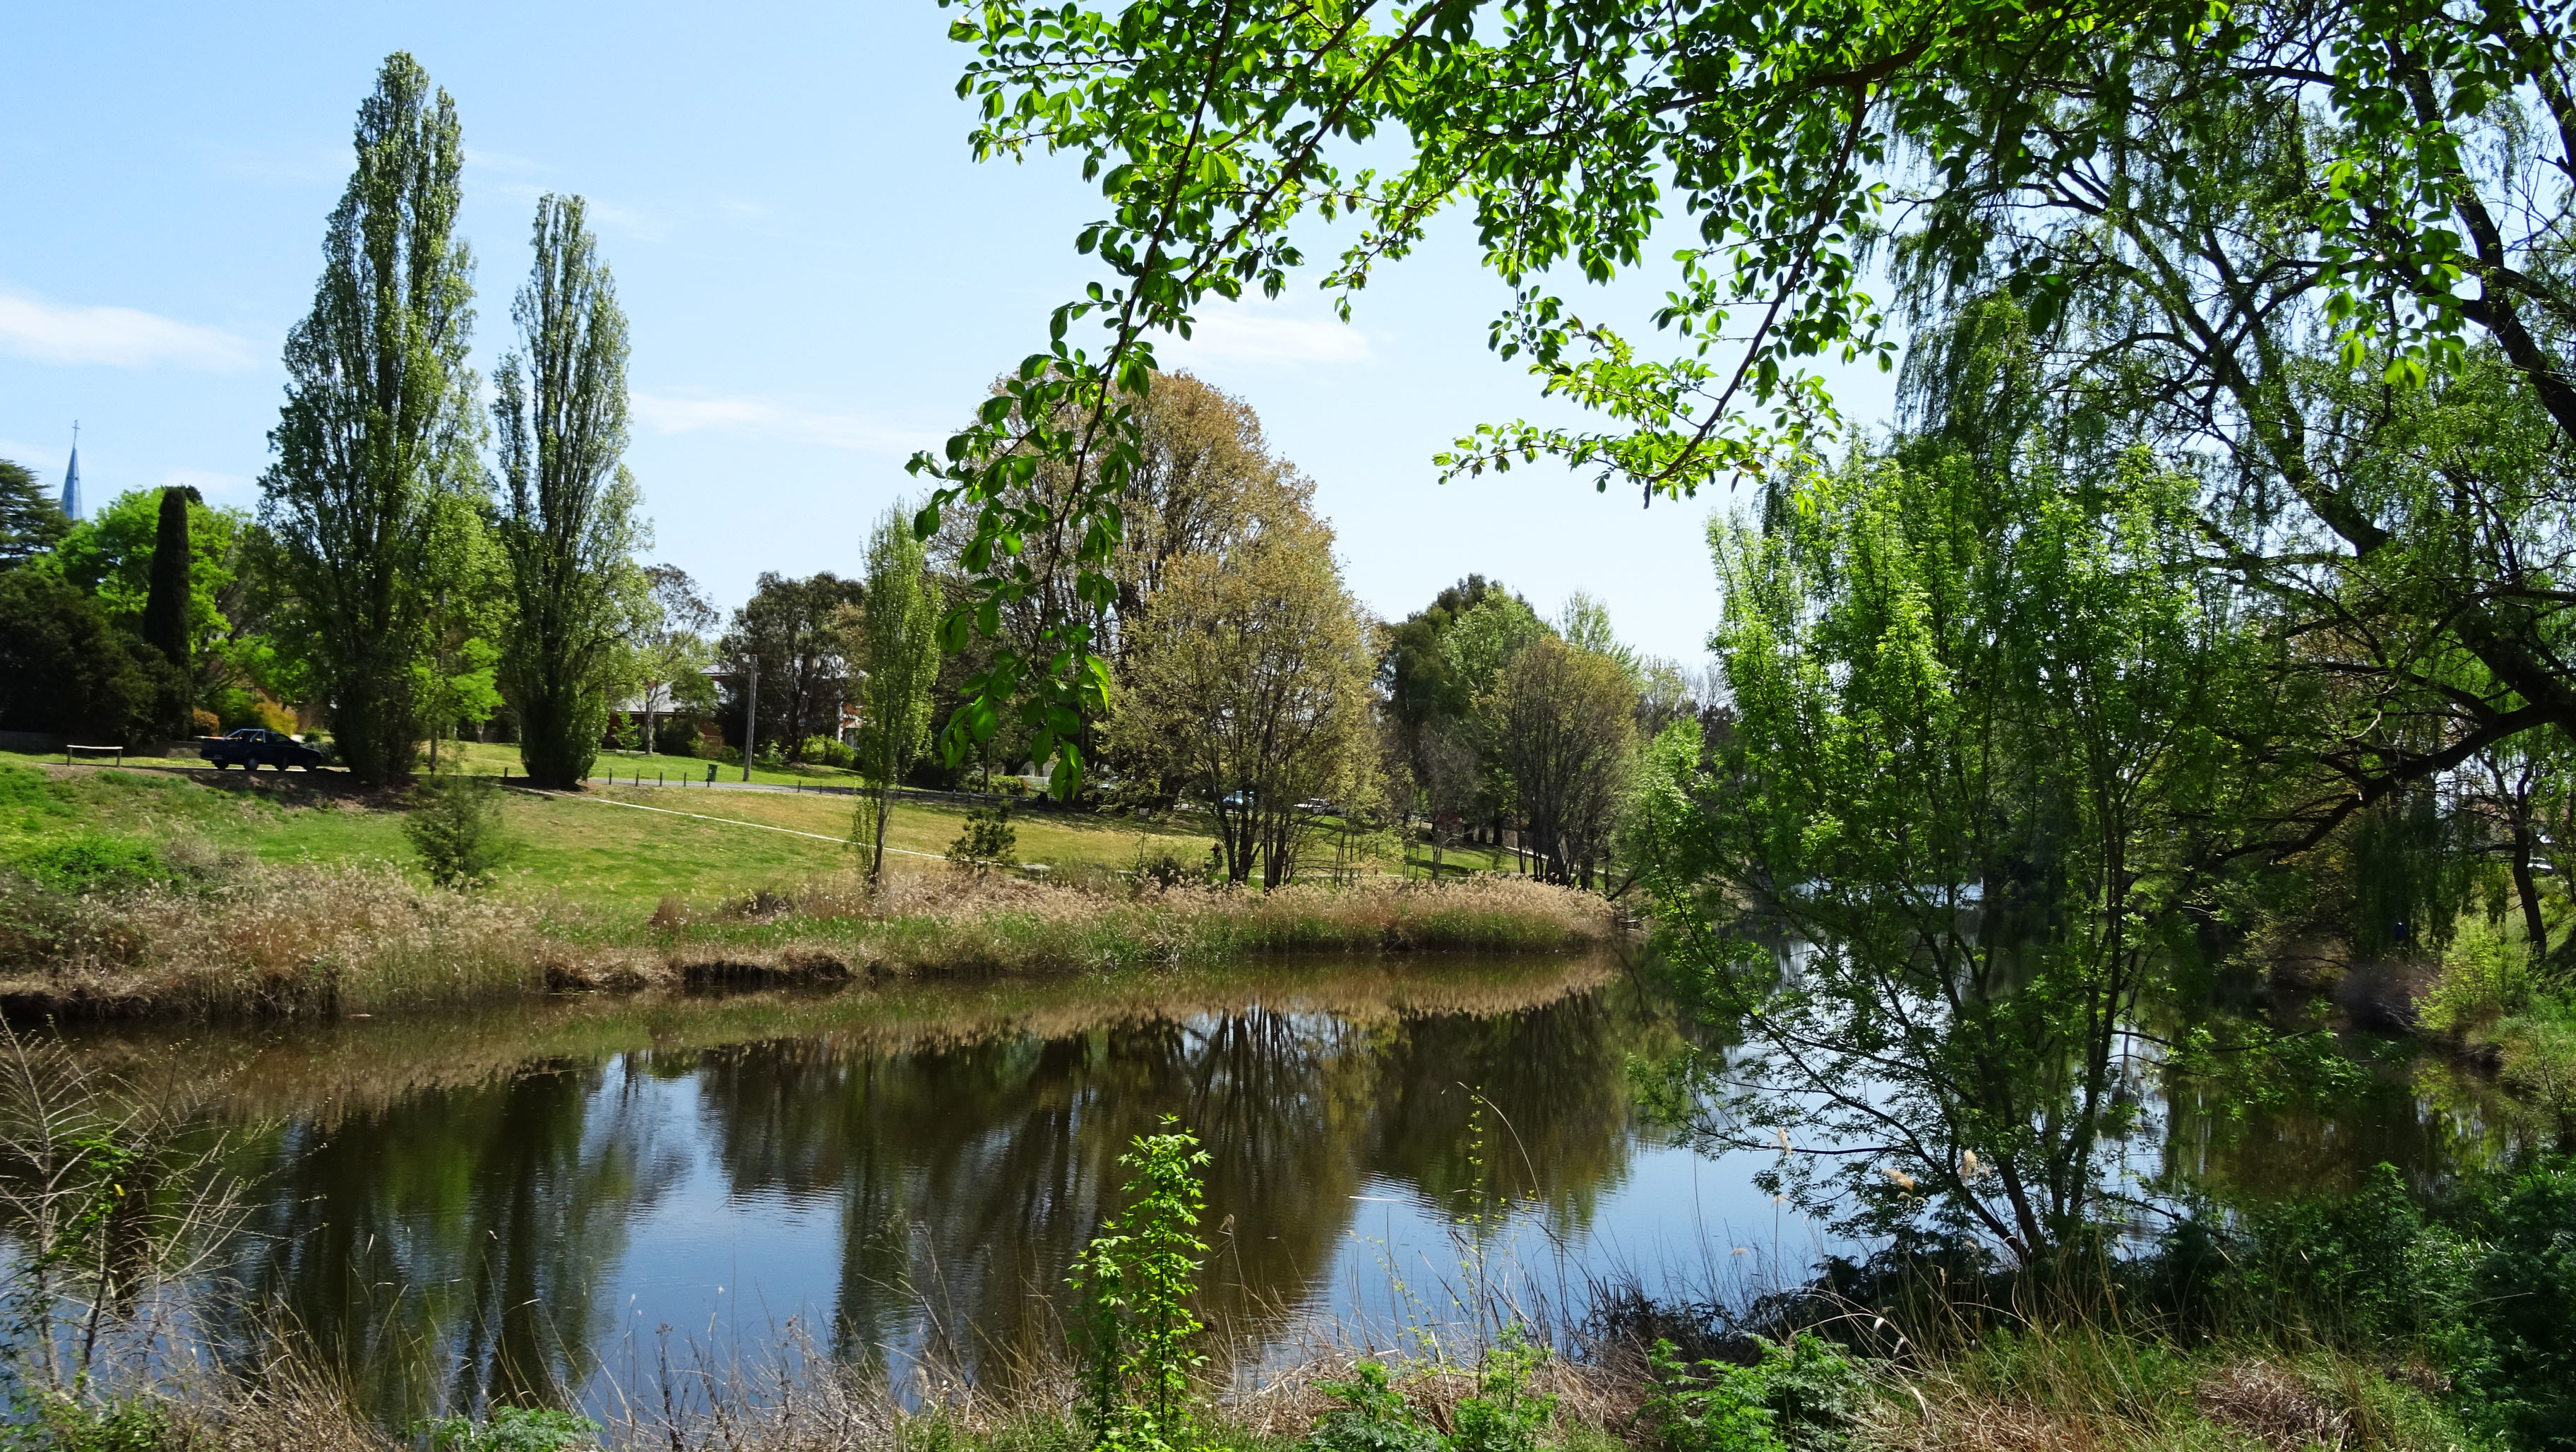 queanbeyan river - photo#14